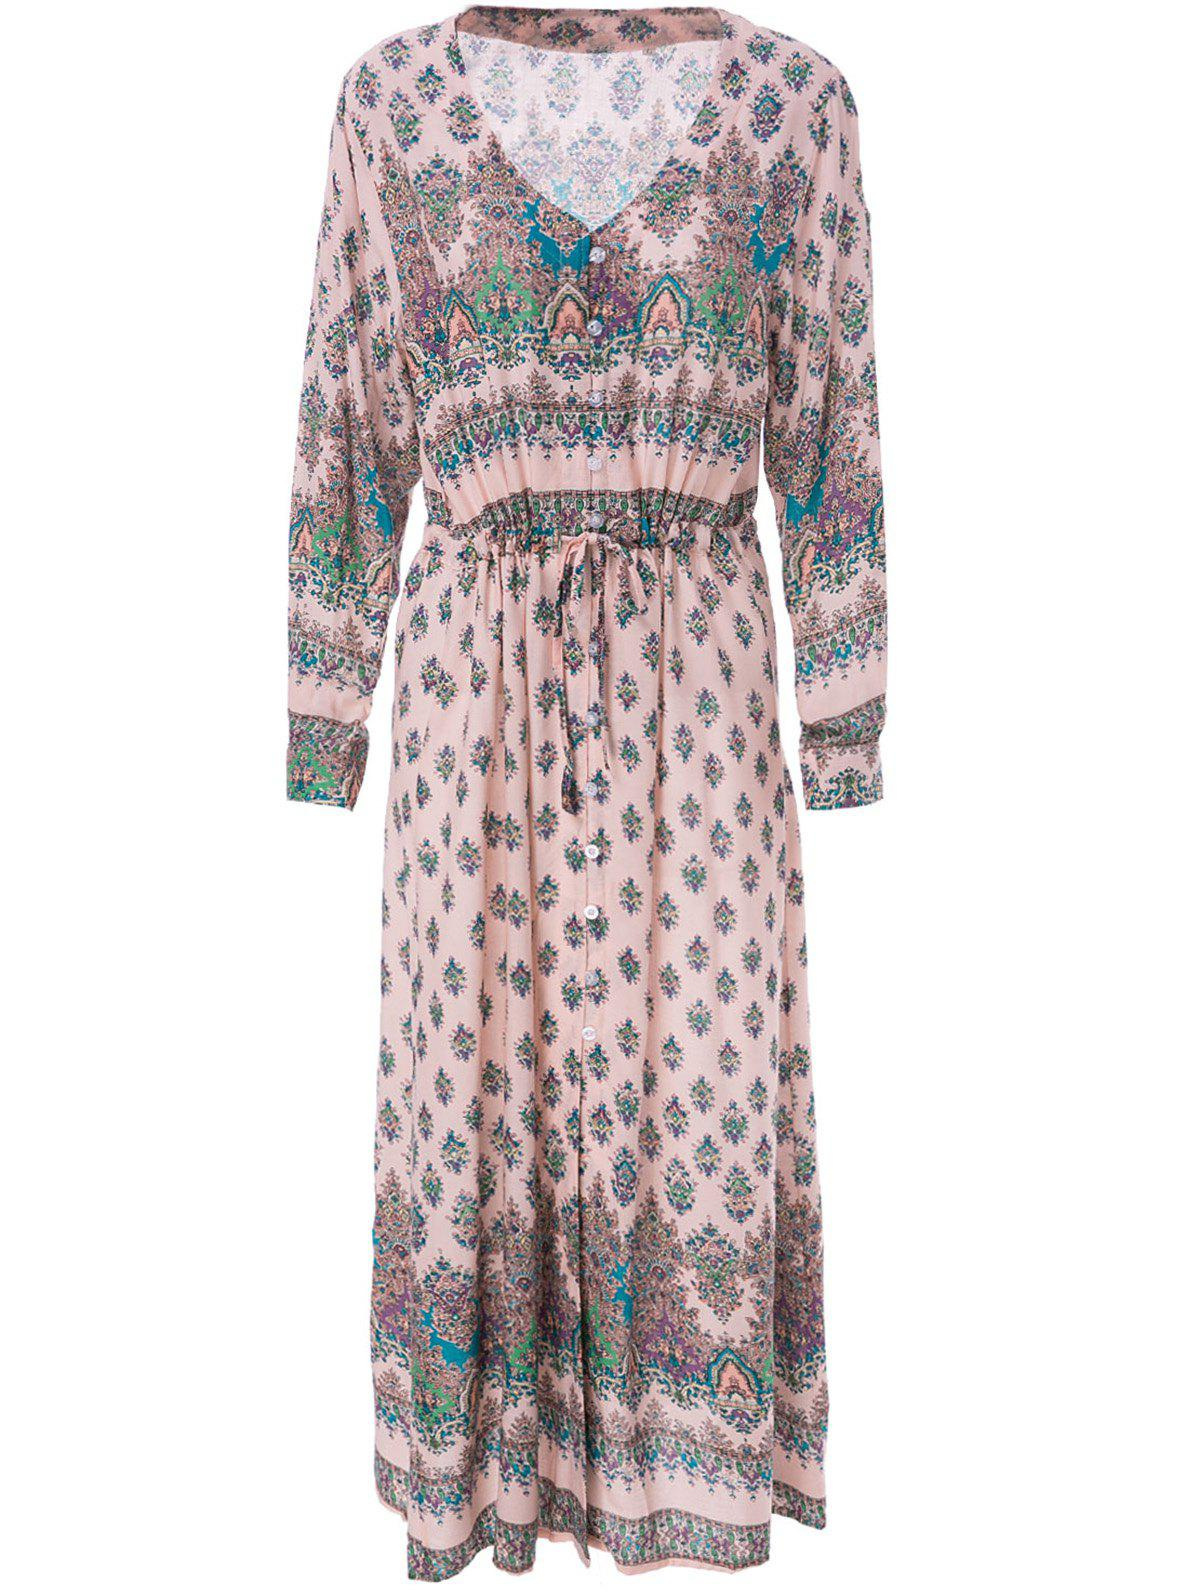 Bohemian 3/4 Sleeve V-Neck Printed Women's Dress - LIGHT PINK L